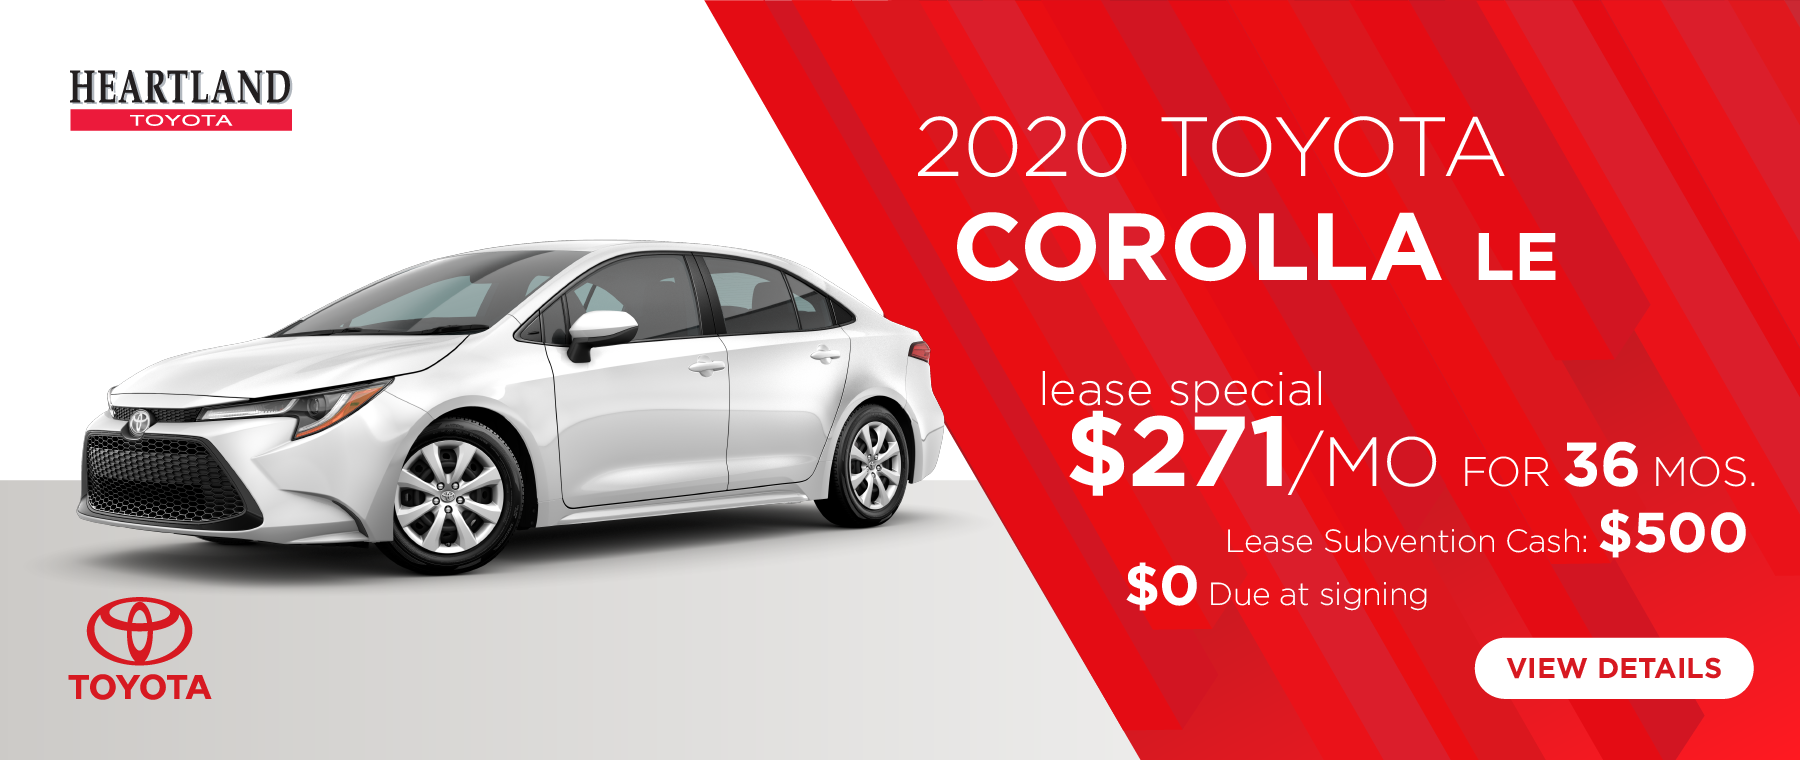 2020 Toyota Corolla LE $271/mo. For 36 months * $0 Due at Signing  Lease Subvention Cash: $500   *Offer valid on 2020 Toyota Corolla LE (1852). $271 per mo. for 36 months. Lease with $0 due at signing; includes a $695 acquisition fee. Valid on VIN: JTDEPRAEXLJ007066, 5YFEPRAE6LP009019, JTDEPRAE2LJ033323. MSRP $20,880. Deal #401144. Plus, Lease Subvention Cash: $500. Subject to credit approval. No Security deposit required. Excludes taxes, title, and fees. 36 monthly payments required. Not all lessees will qualify for lowest payment through participating lender. Residency restrictions apply. Lessee responsible for mileage over 10,000 miles per year at $0.12/mile per year. Option to purchase at lease end. A negotiable dealer documentary service fee of up to $150 may be added to the sale price or capitalized cost. Offer expires 7/31/2019.